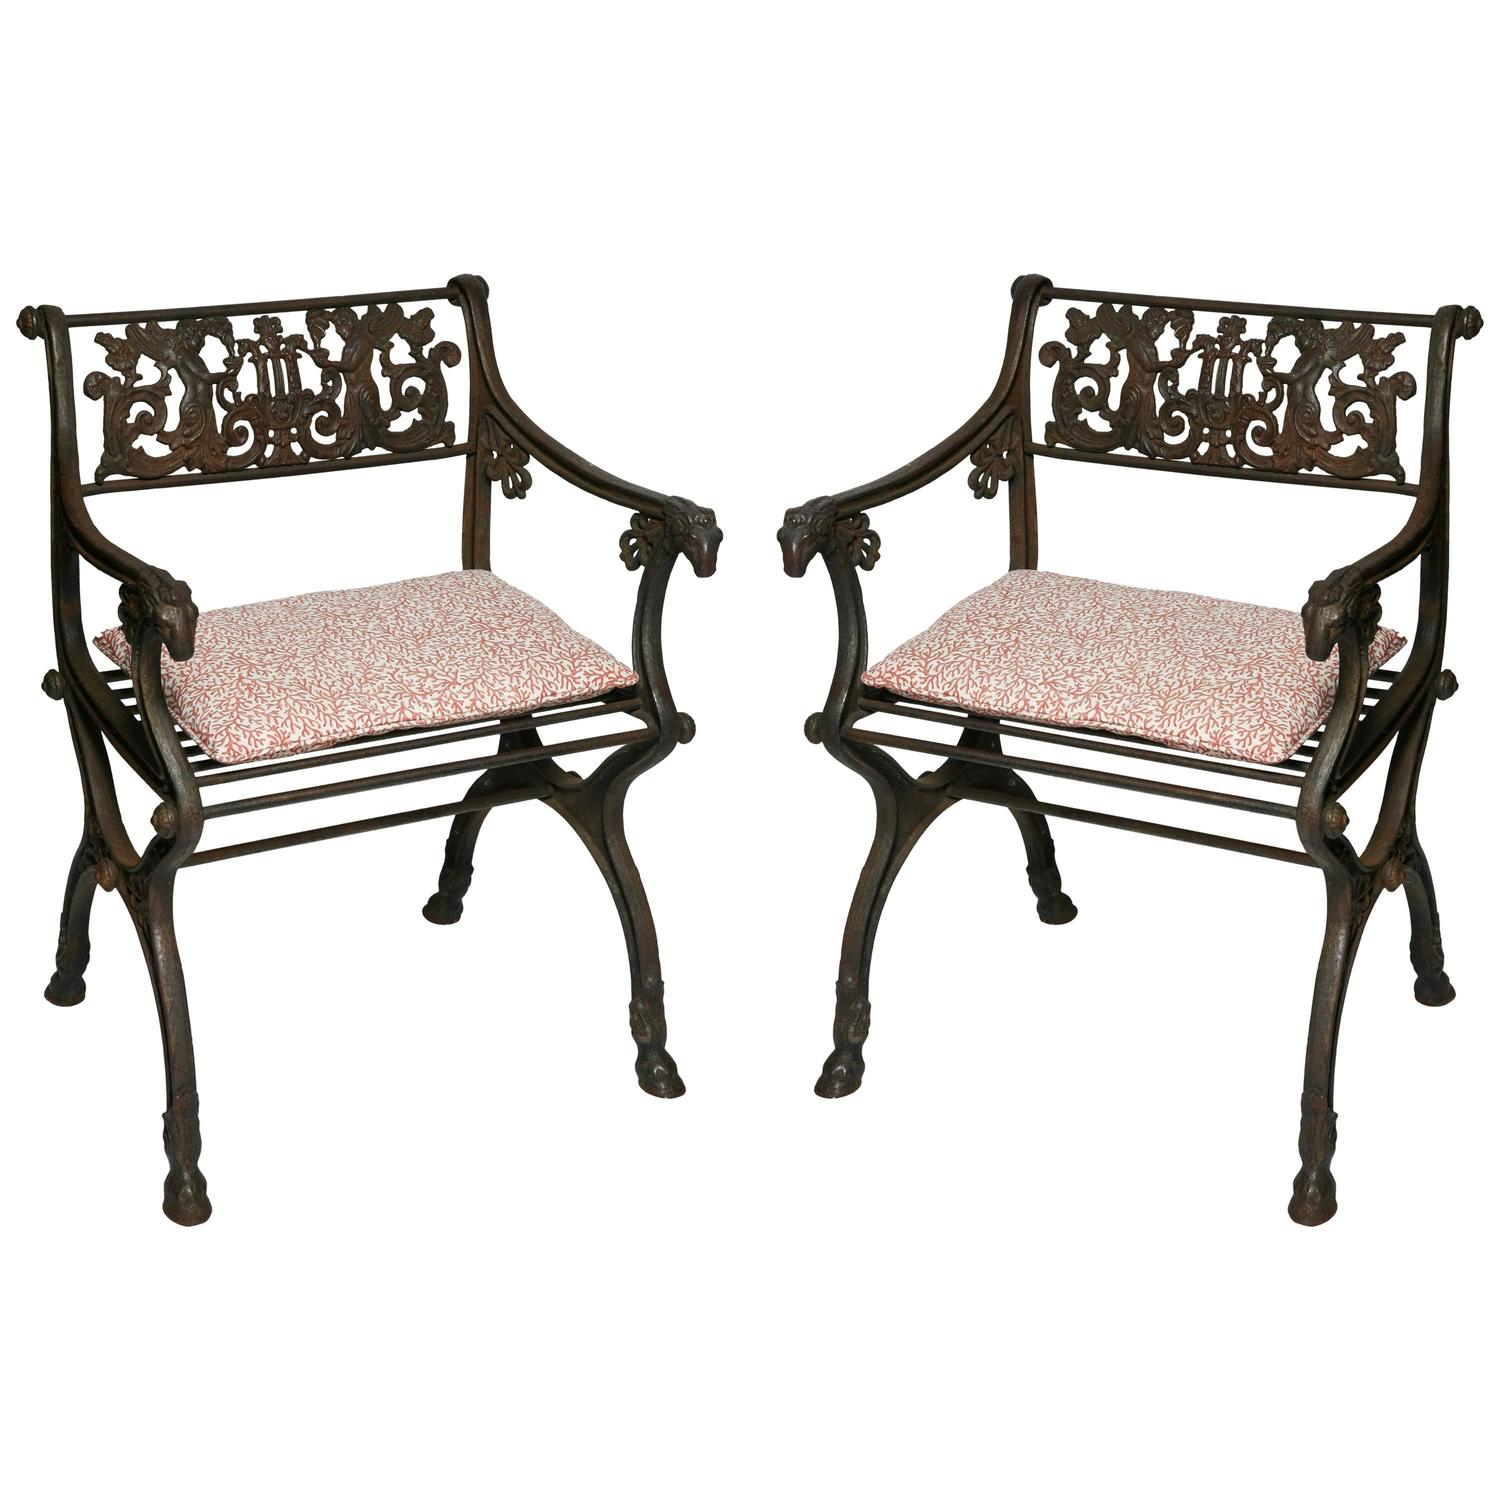 Pair of Antique Iron Garden Chairs For Sale at 1stdibs